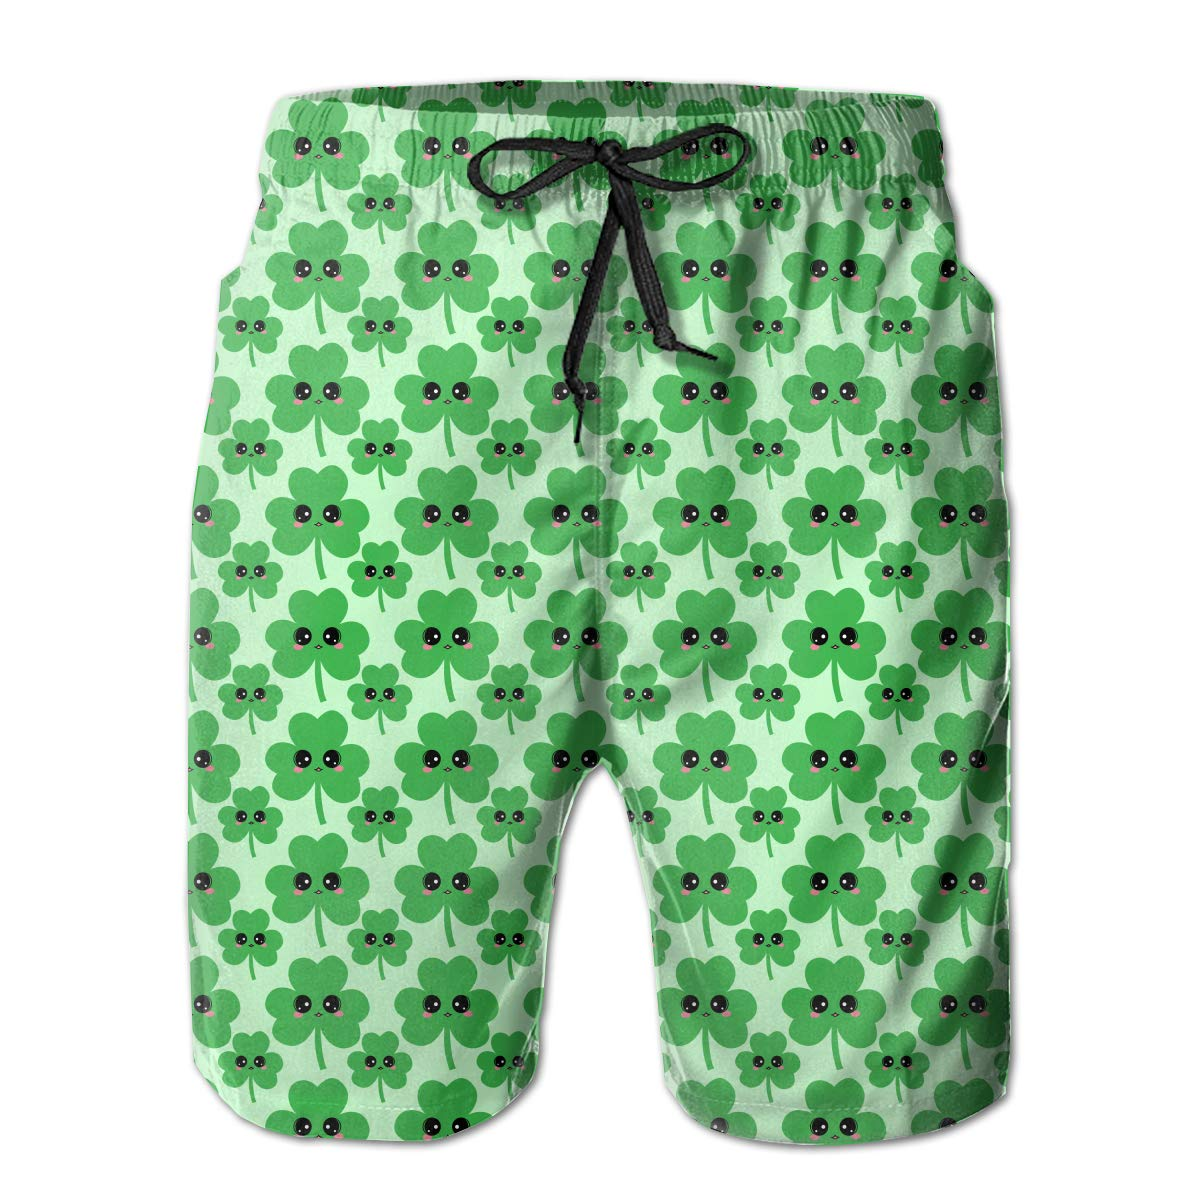 RolandraceHappy Shamrock Mens Colorful Swim Trunks Beach Board Shorts with Lining